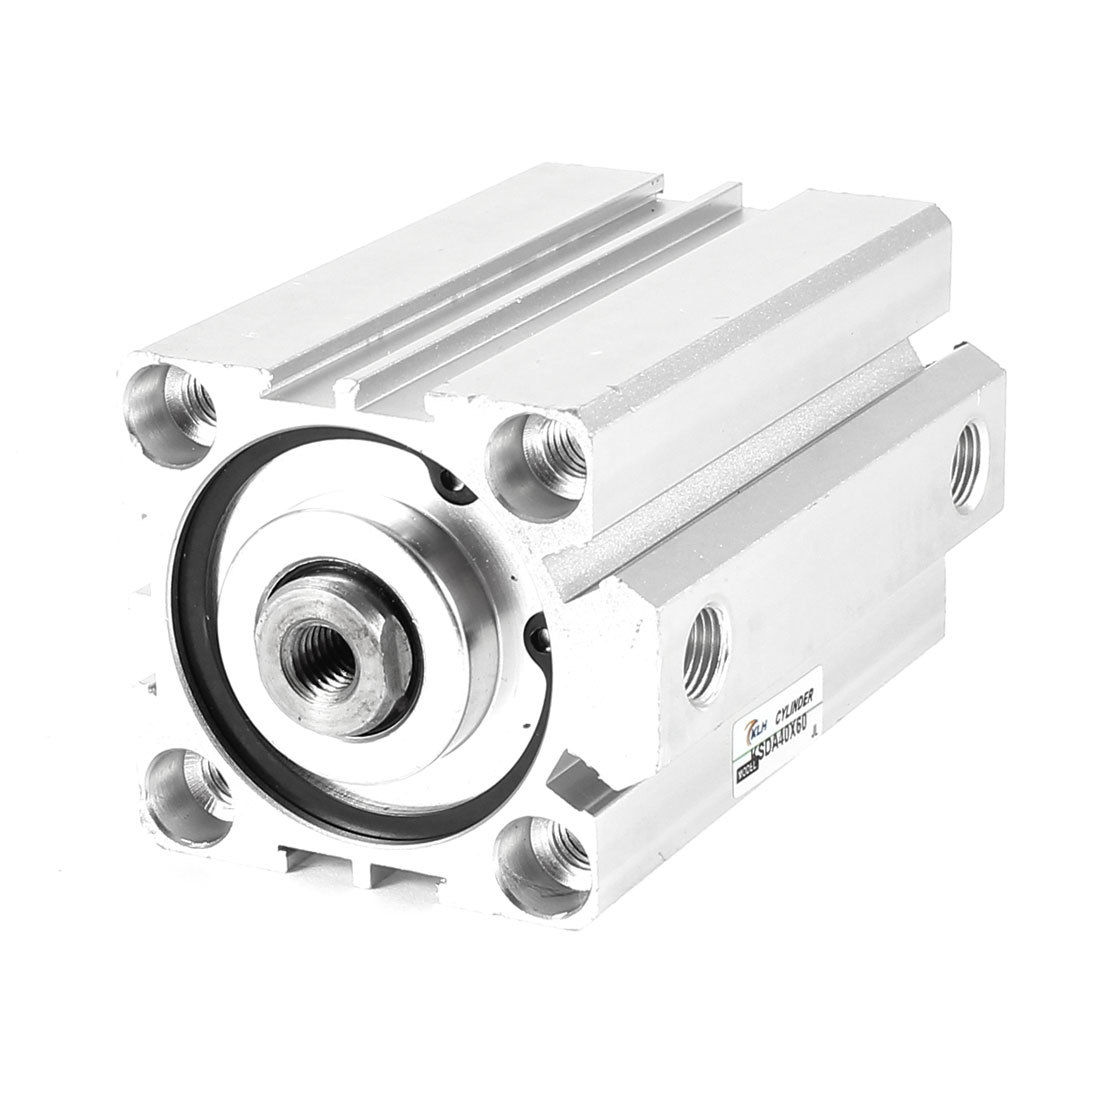 1 Pcs 50mm Bore 40mm Stroke Stainless steel Pneumatic Air Cylinder SDA50-40 1 pcs 50mm bore 25mm stroke stainless steel pneumatic air cylinder sda50 25